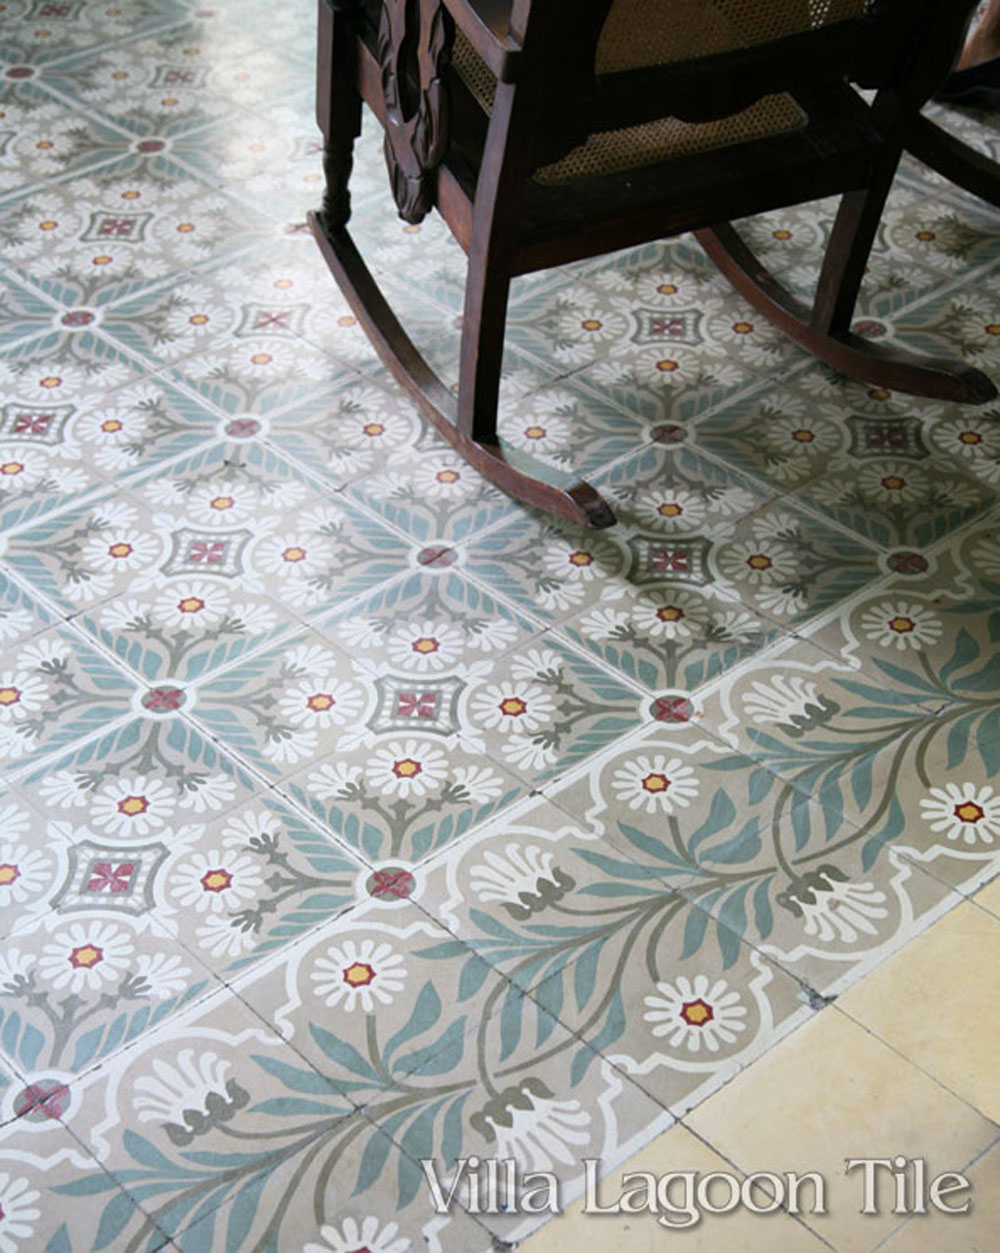 Our MAMBO pattern tile in Havana, Cuba...the same design as in the Palace Palacio Ferrer in Cienfuegos, Cuba.